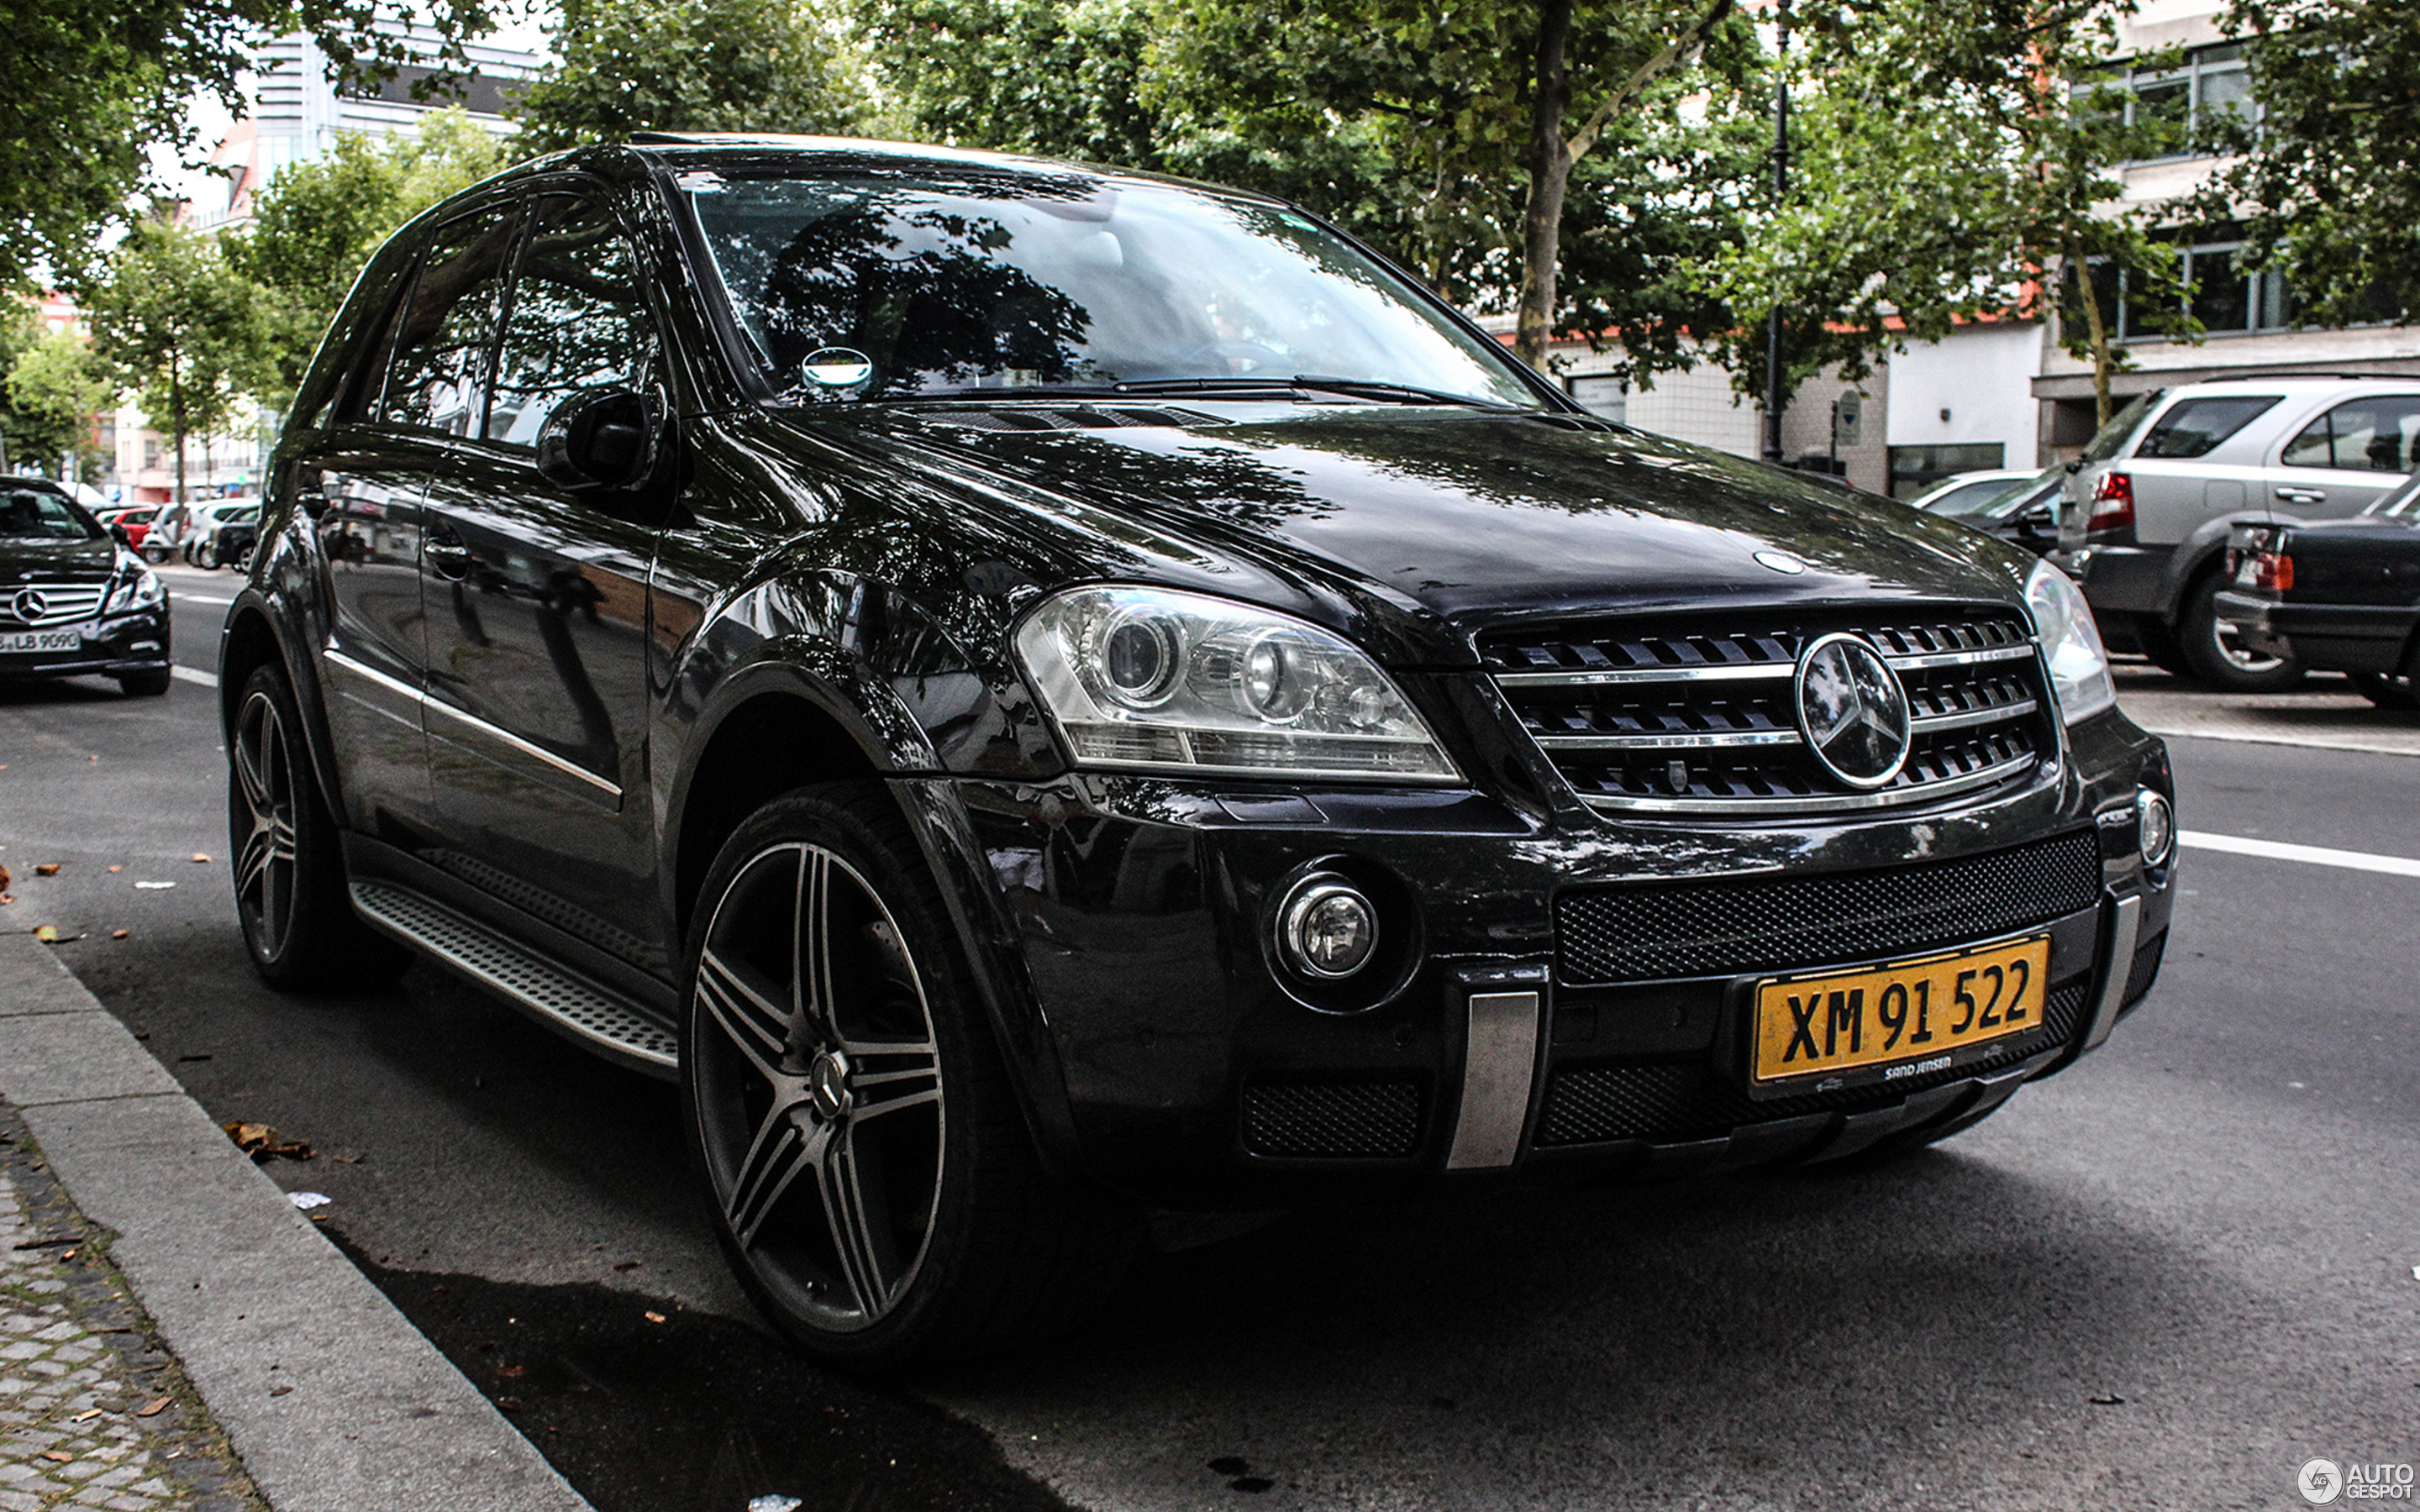 Mercedes Benz ML 63 AMG W164 21 August 2013 Autogespot